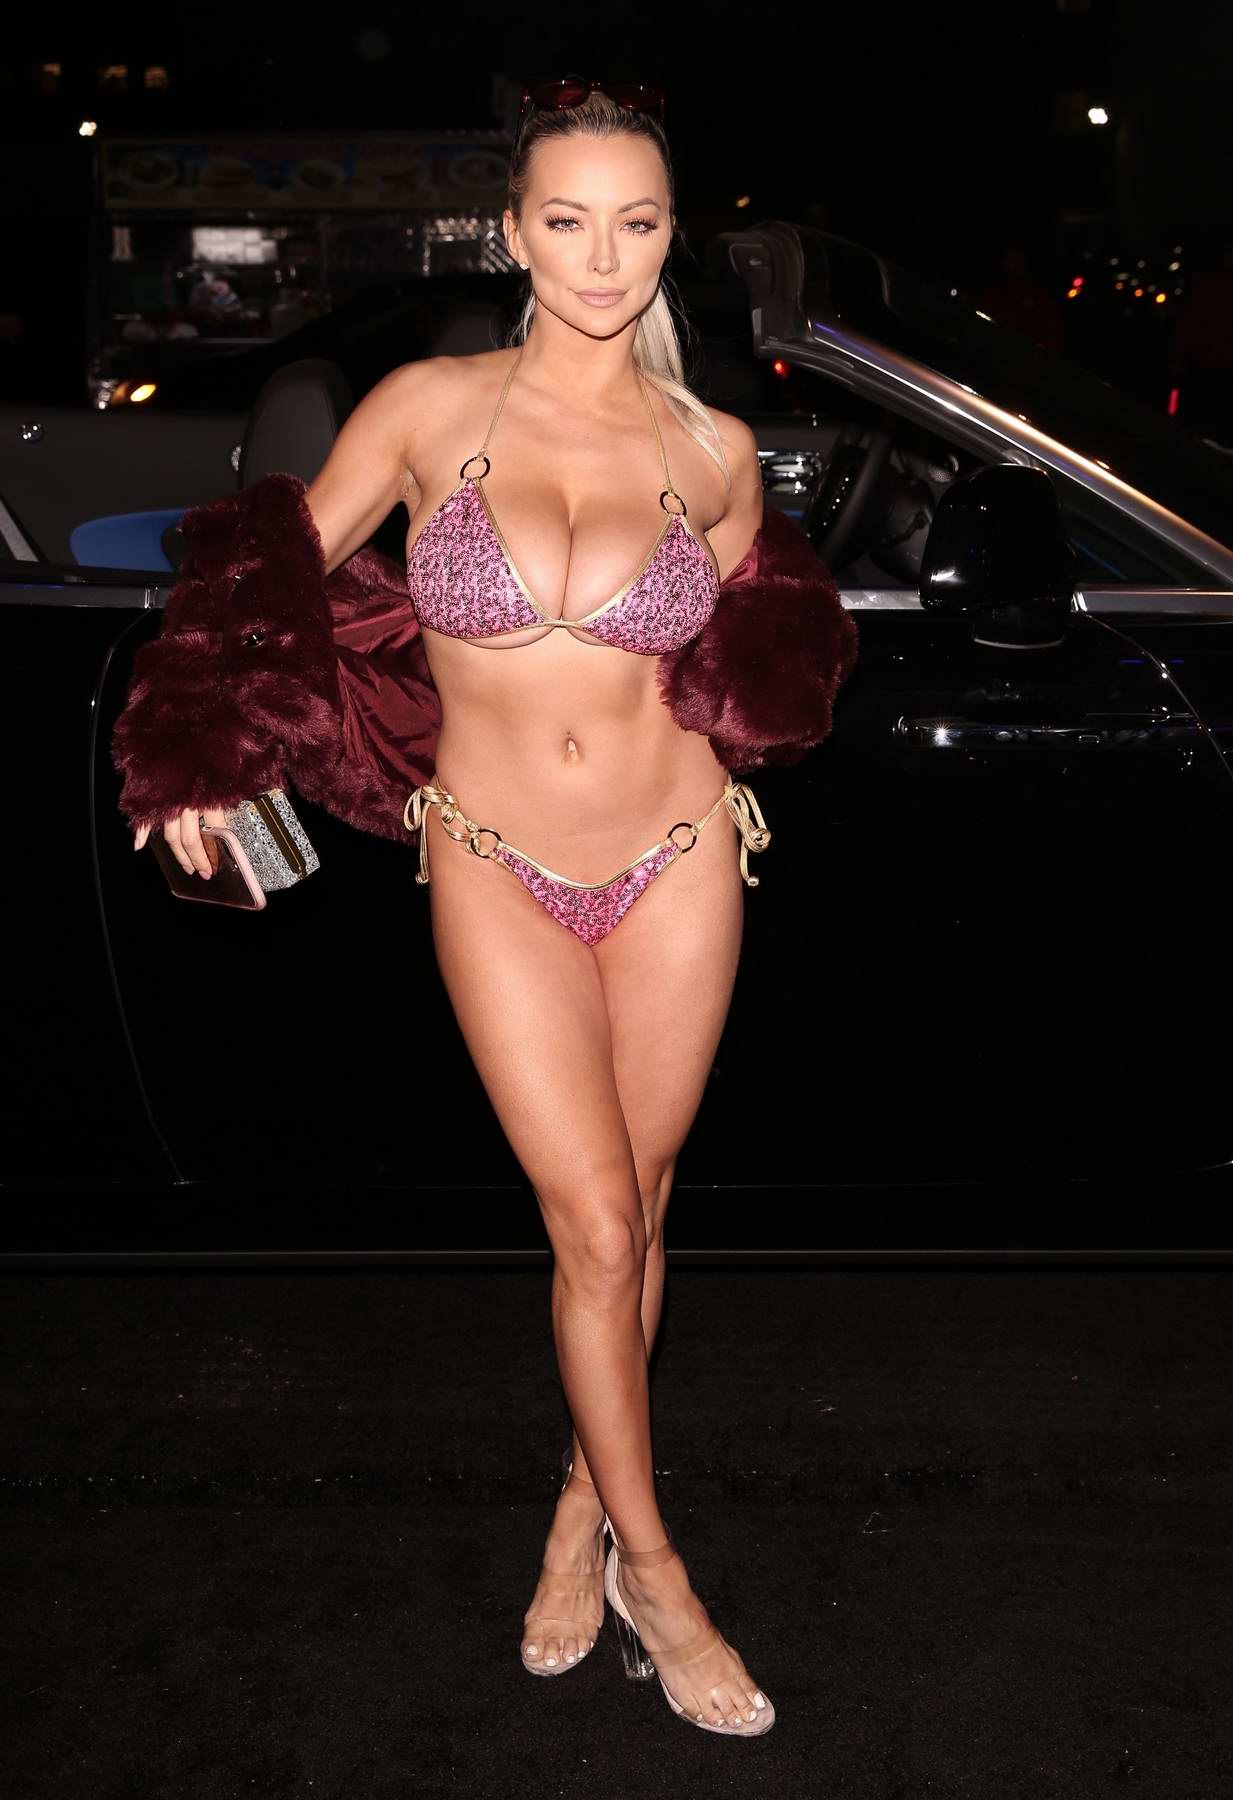 Lindsey Pelas in a bikini arrives to Treats Magazine Halloween party in Los Angeles